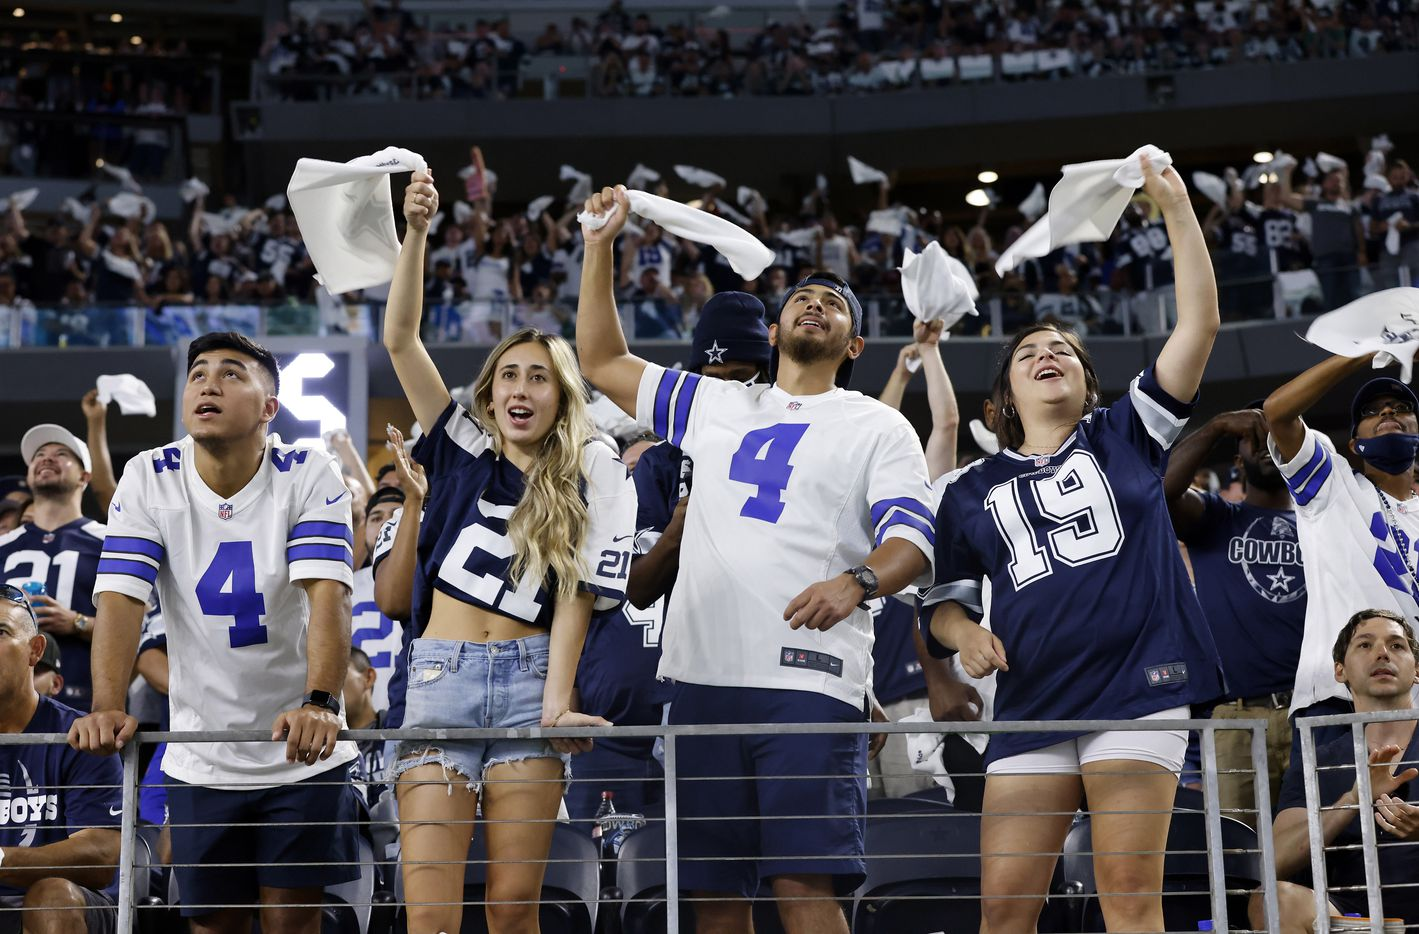 Dallas Cowboys fans are fired up after Dalton Schultz fourth quarter touchdown against the Philadelphia Eagles at AT&T Stadium in Arlington, Monday, September 27, 2021. (Tom Fox/The Dallas Morning News)